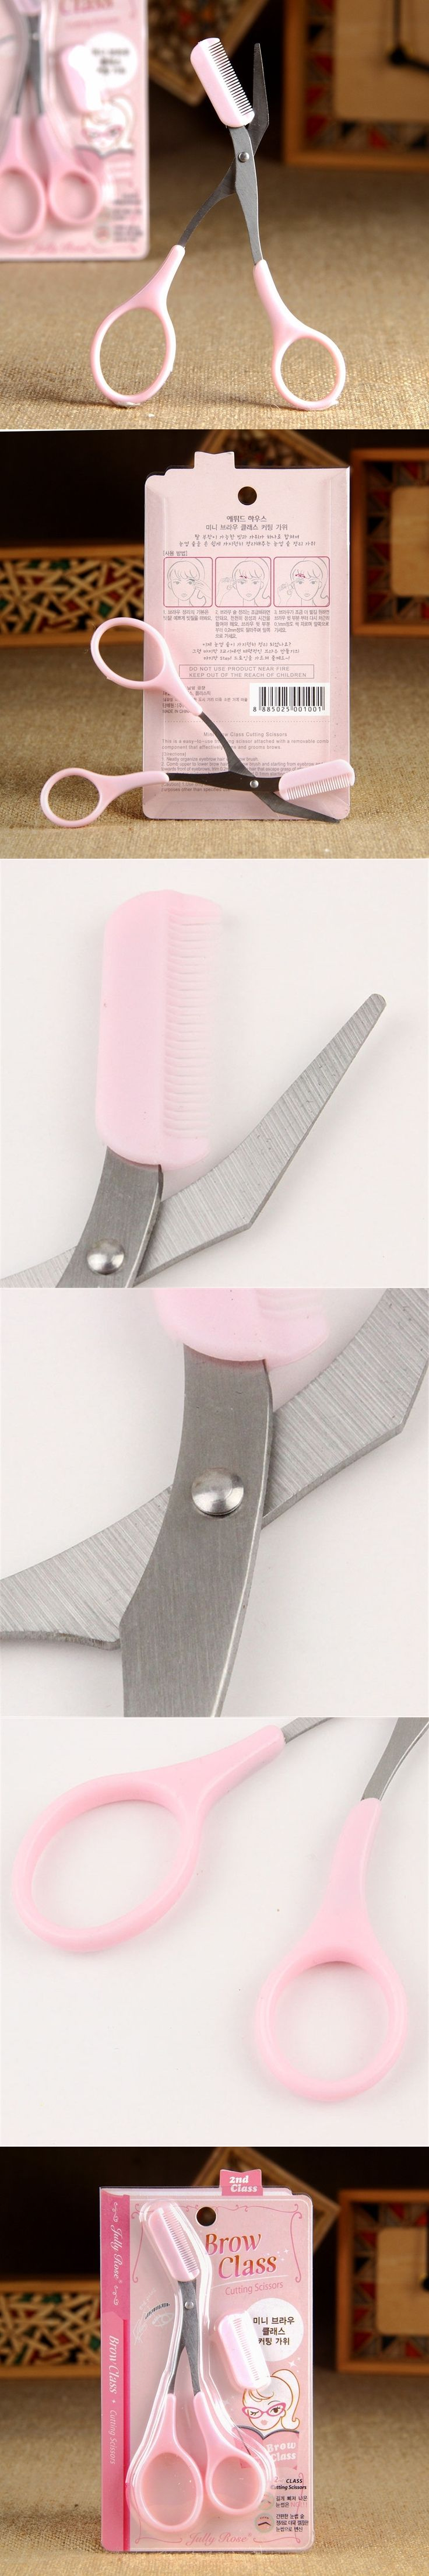 Eyebrow Trimmer Scissors With Comb Remover Makeup Tools Hair Removal Grooming Shaping Shaver Trimmer Eyelash Hair Clips